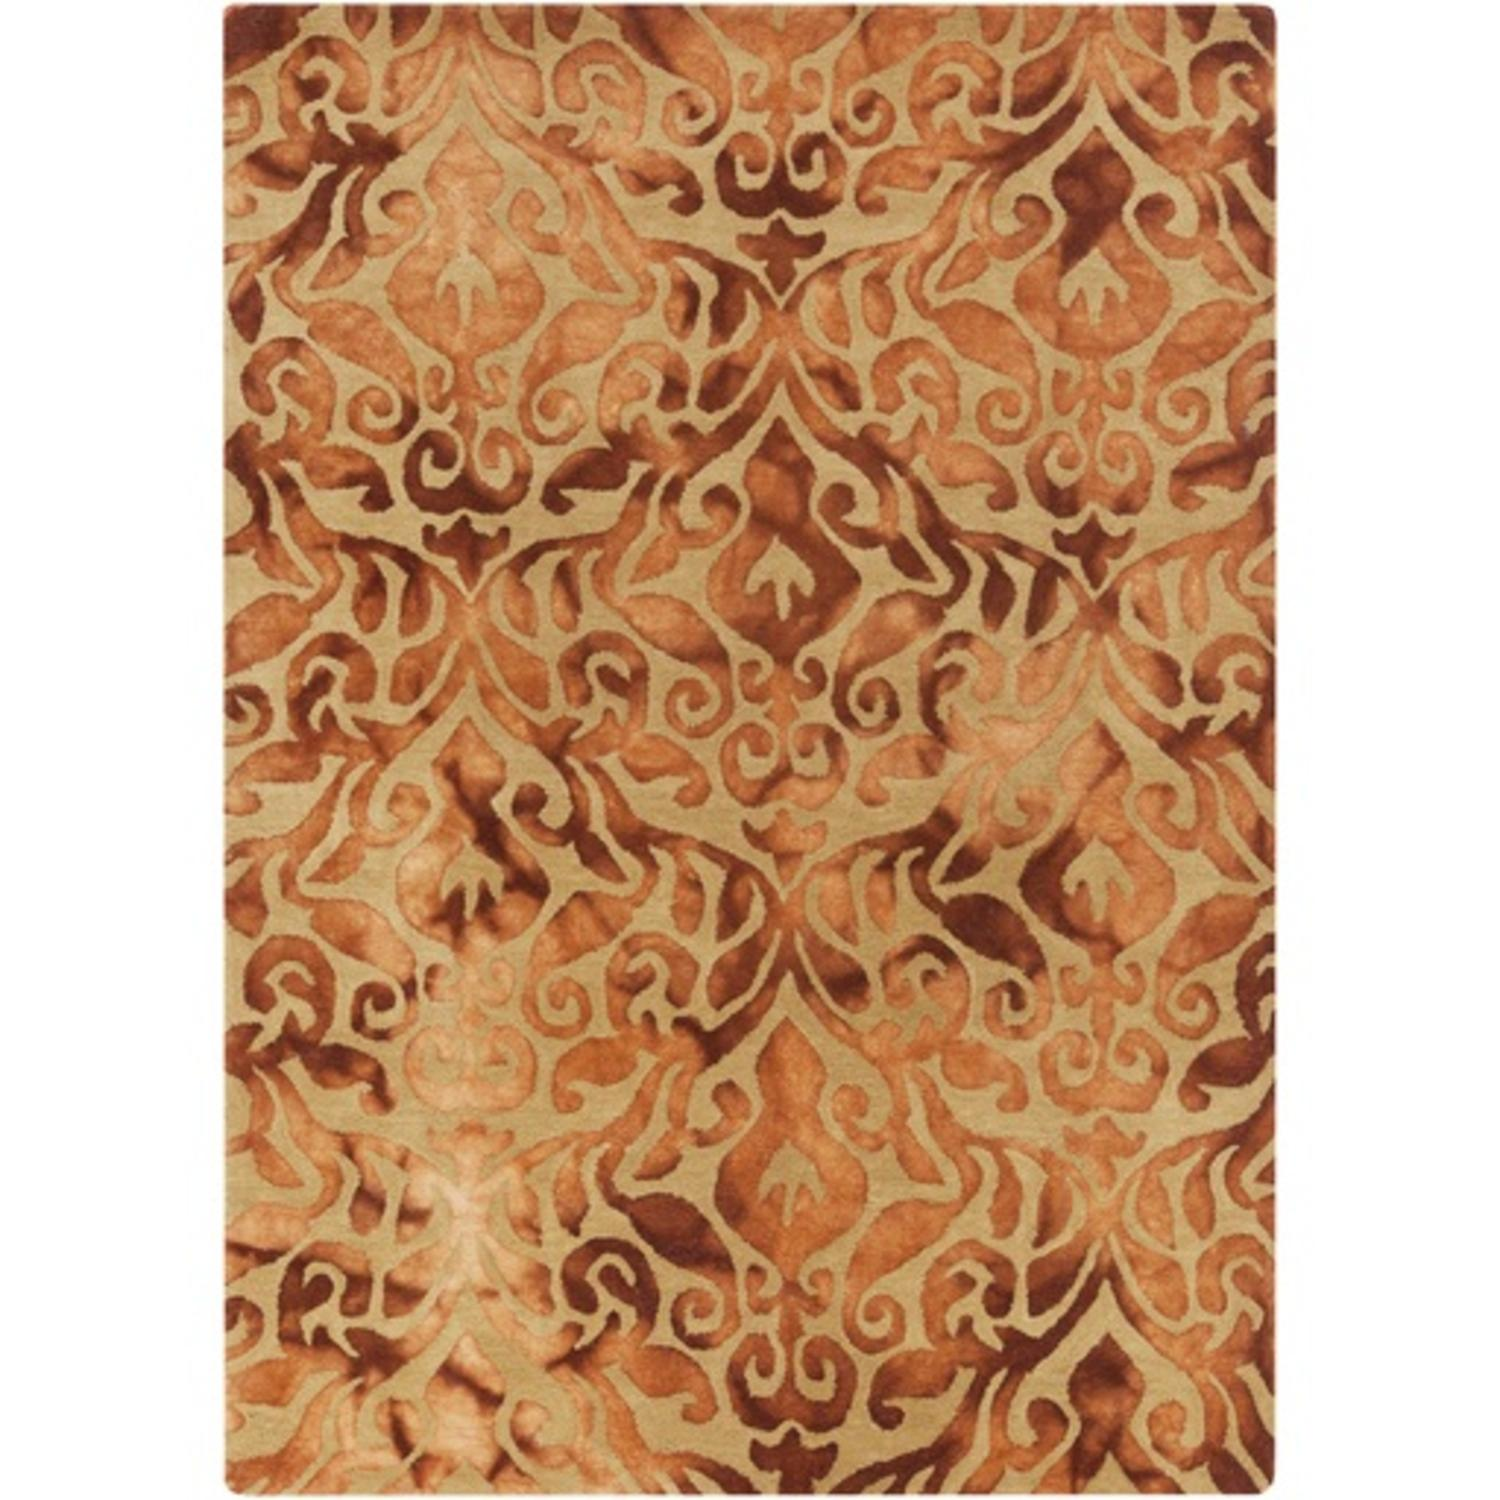 3.25' x 5.25' Blazing Scroll Gold and Fire Orange Area Throw Rug